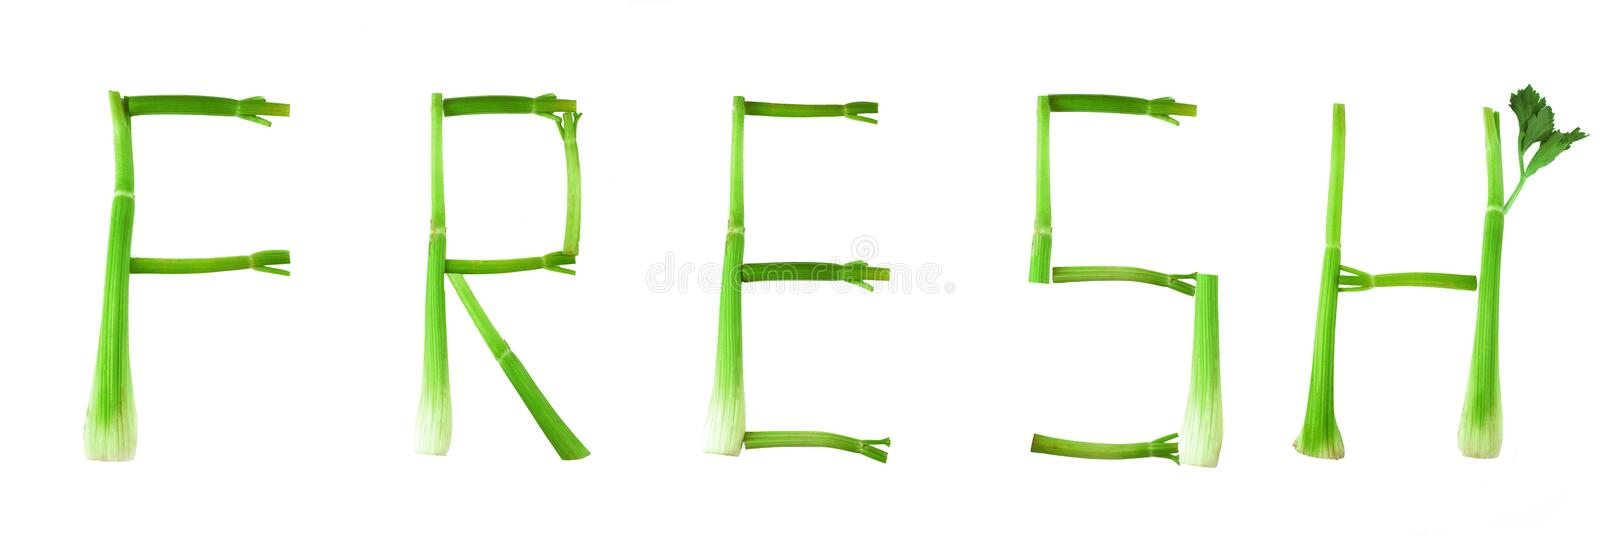 Fresh letters royalty free stock photos